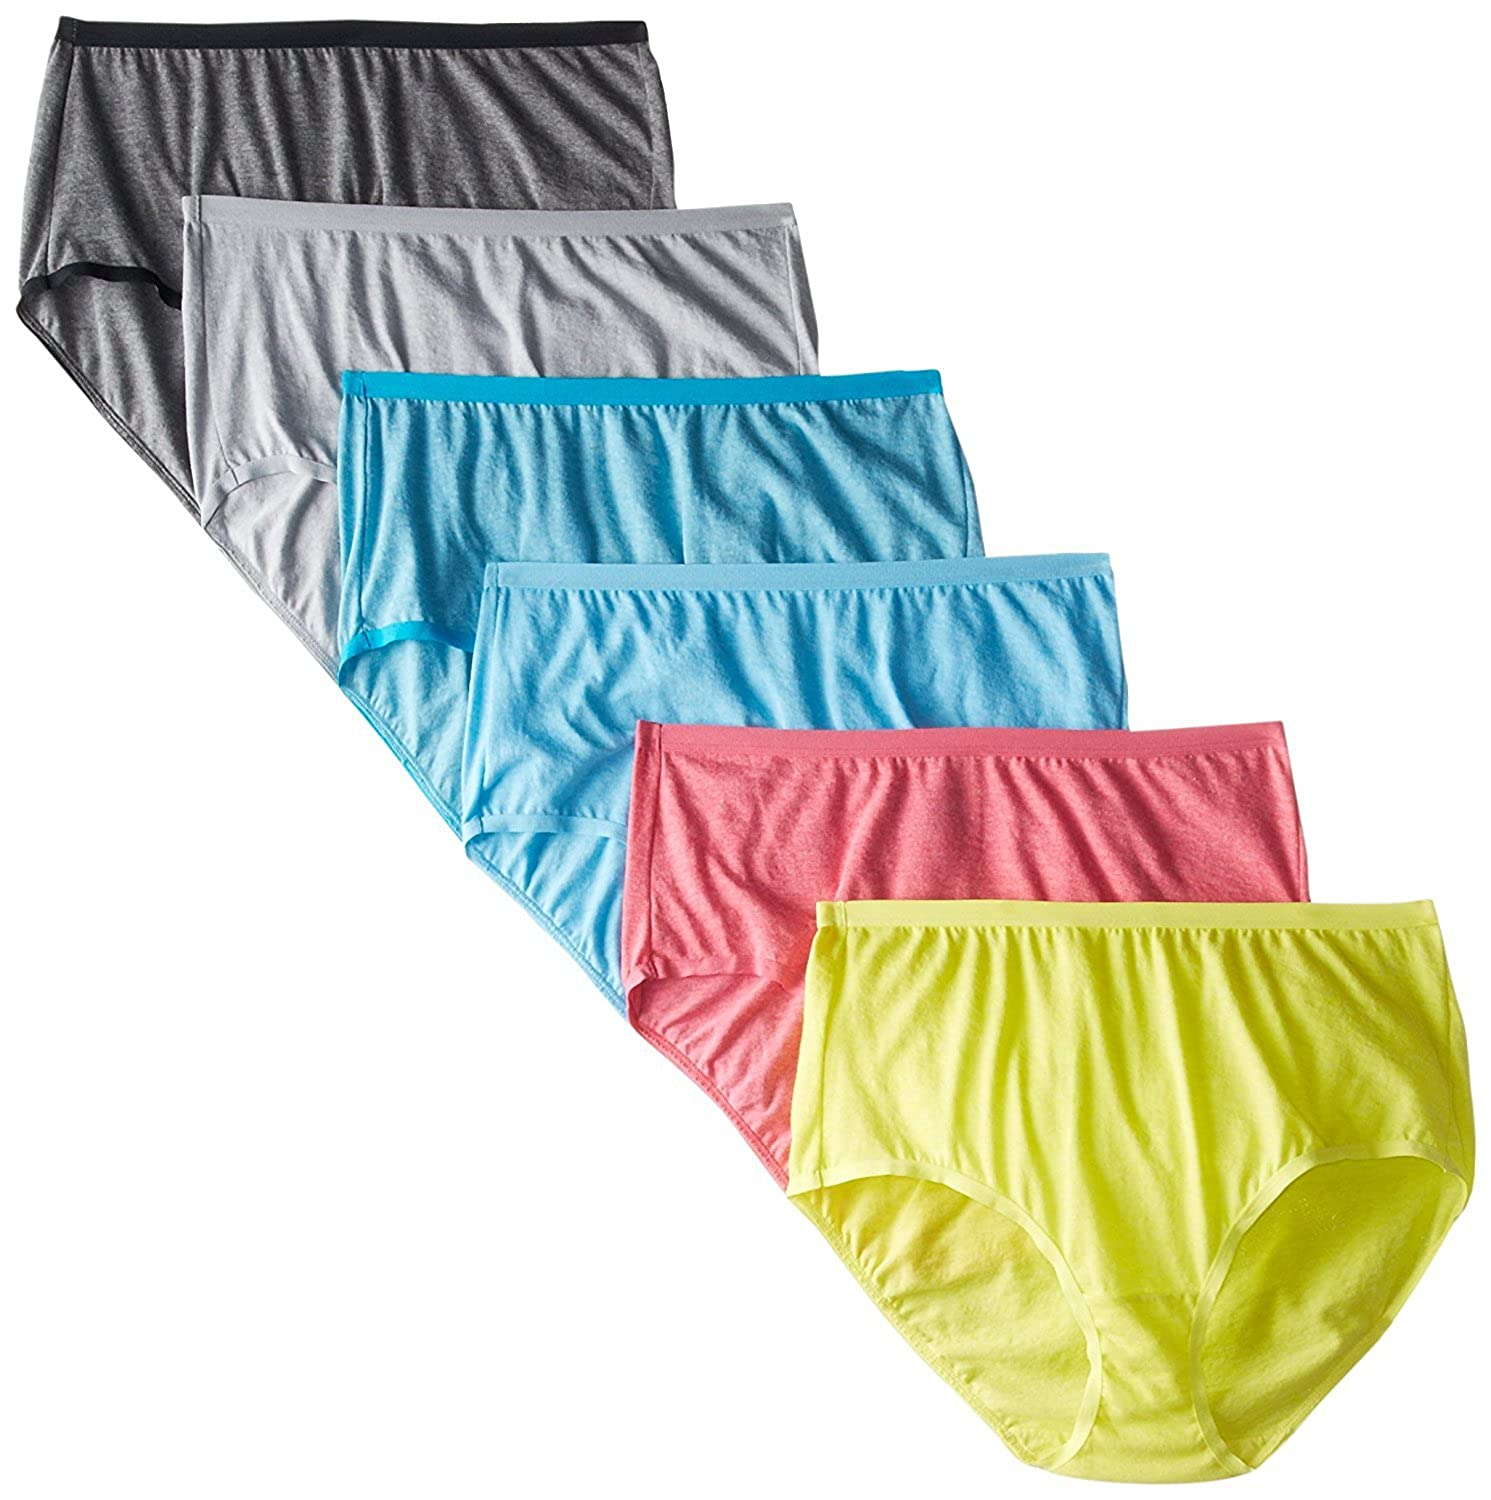 5f627d369750 Fruit of the Loom Women's 6 Pack Nylon Brief Panties, Assorted at Amazon  Women's Clothing store: Briefs Underwear